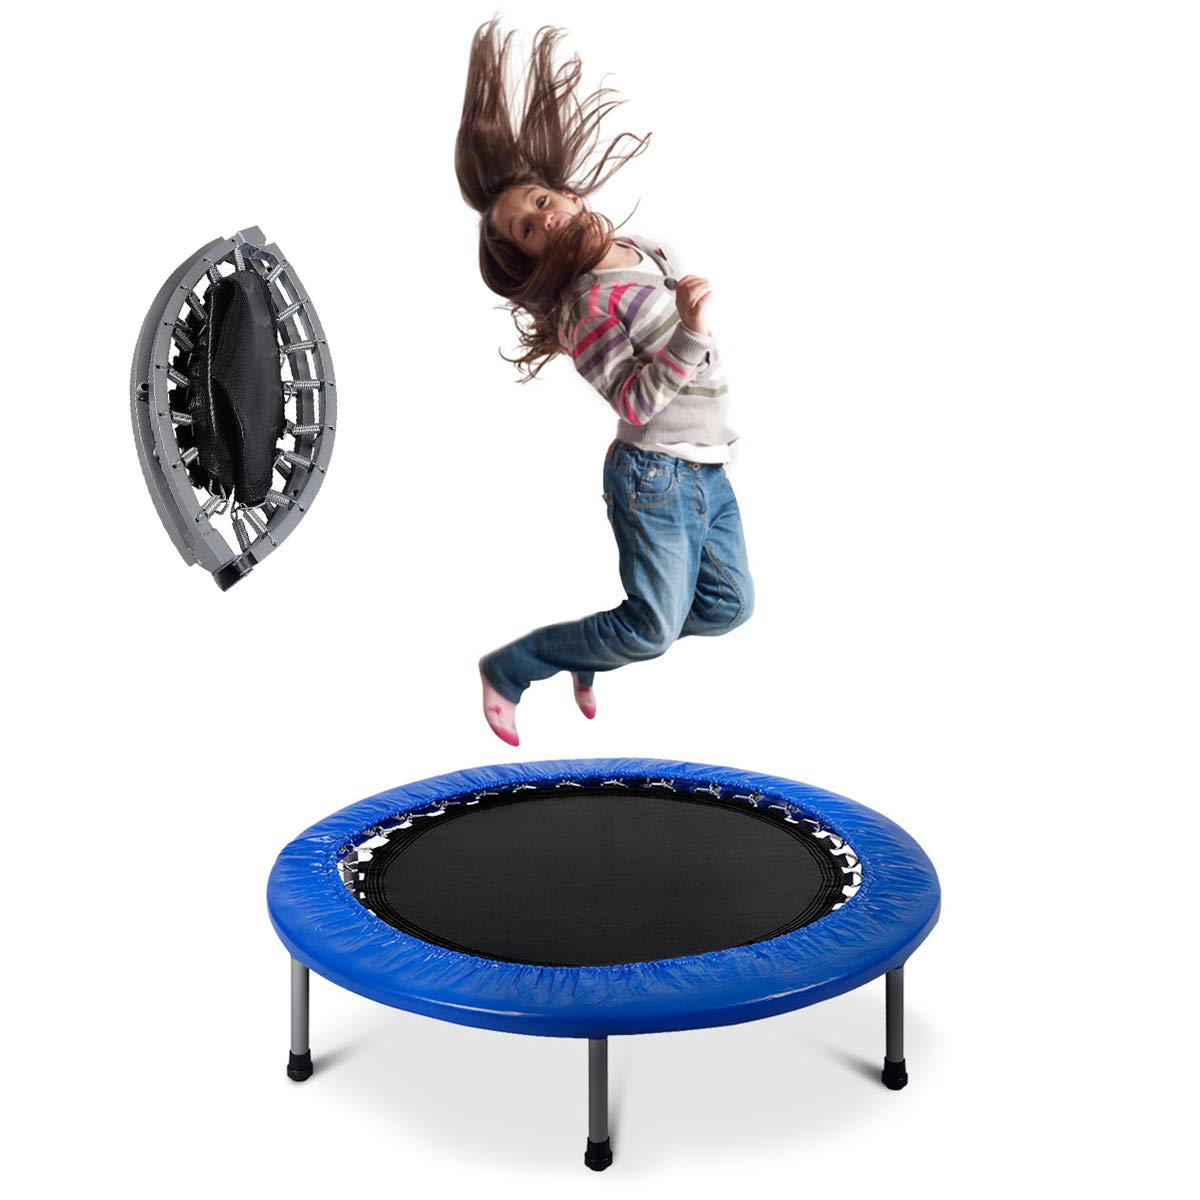 Giantex Mini Fitness Trampoline for Adults and Kids, 38 Inch Rebounder Trampoline, with Padding Springs Elastic Safe for Indoor Outdoor Exercise Workout, Foldable Exercise Trampoline